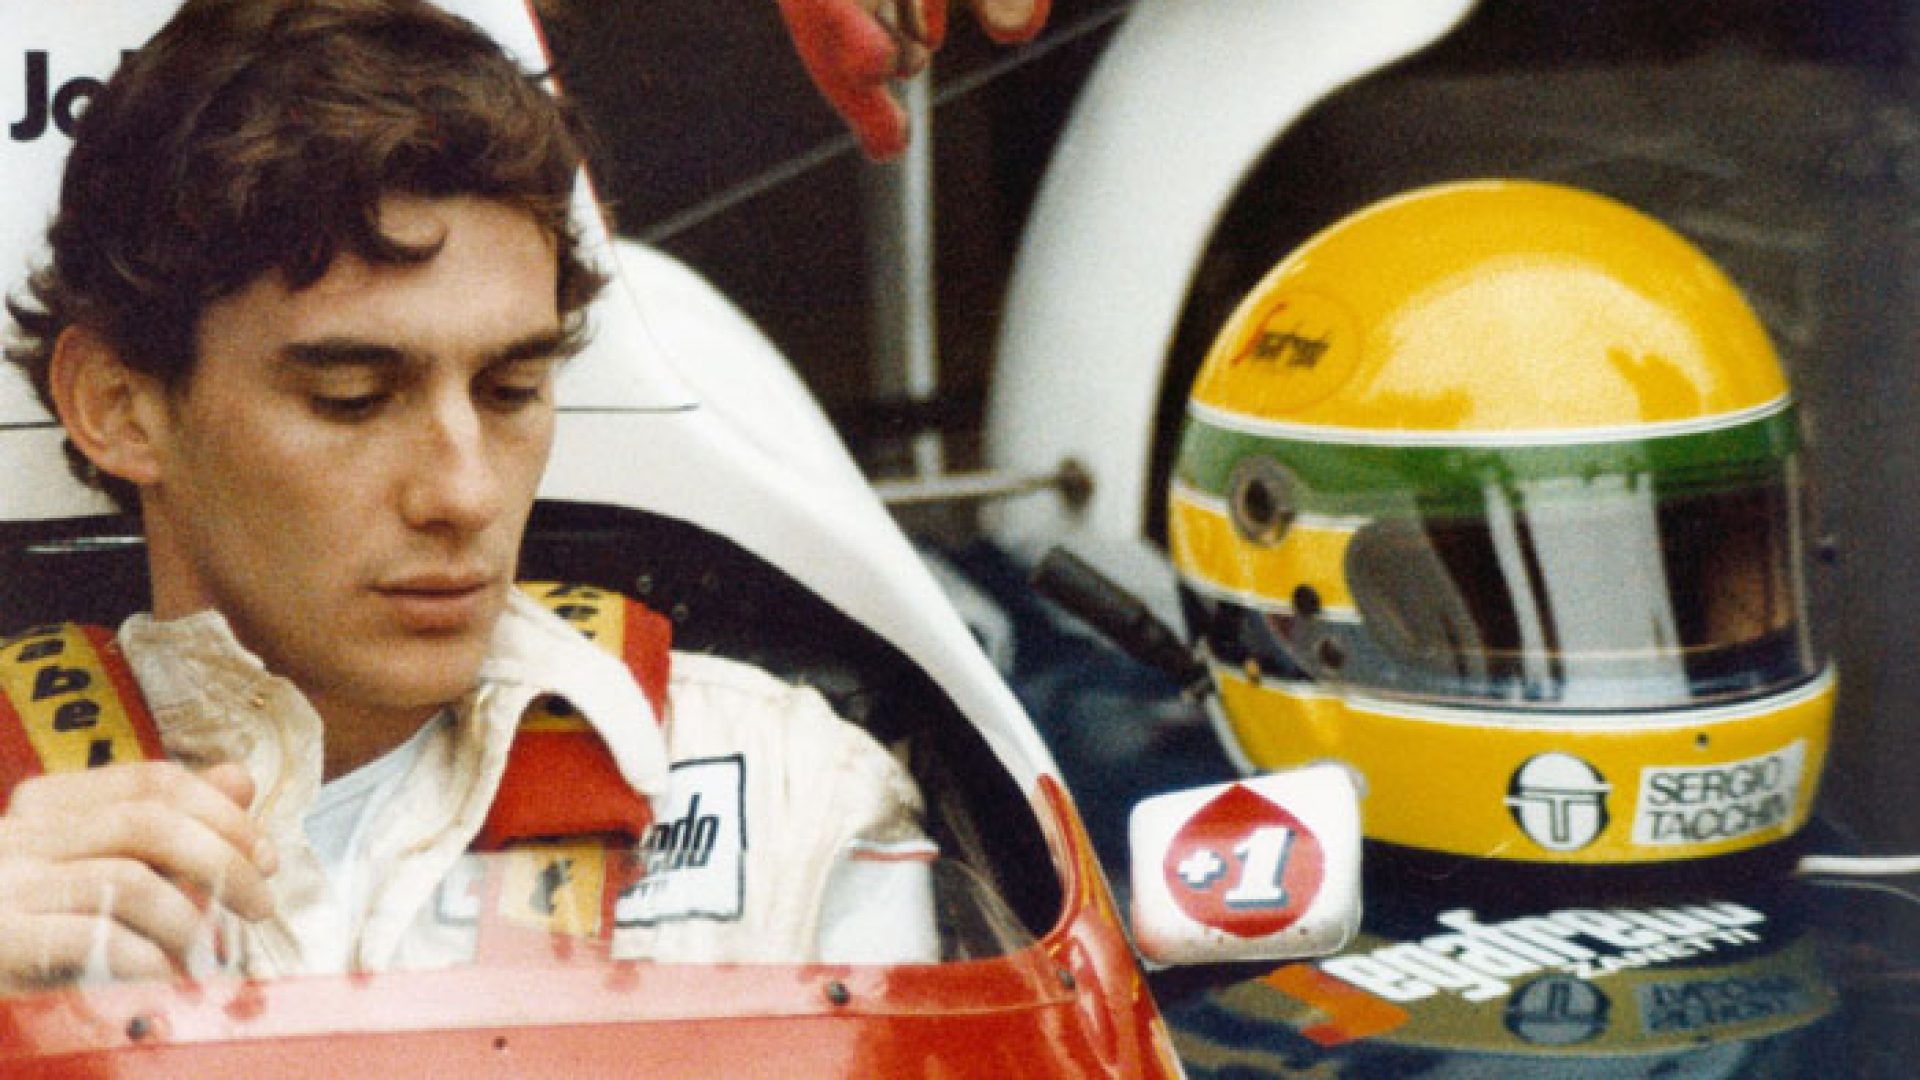 Senna-movie-Publicity-Still